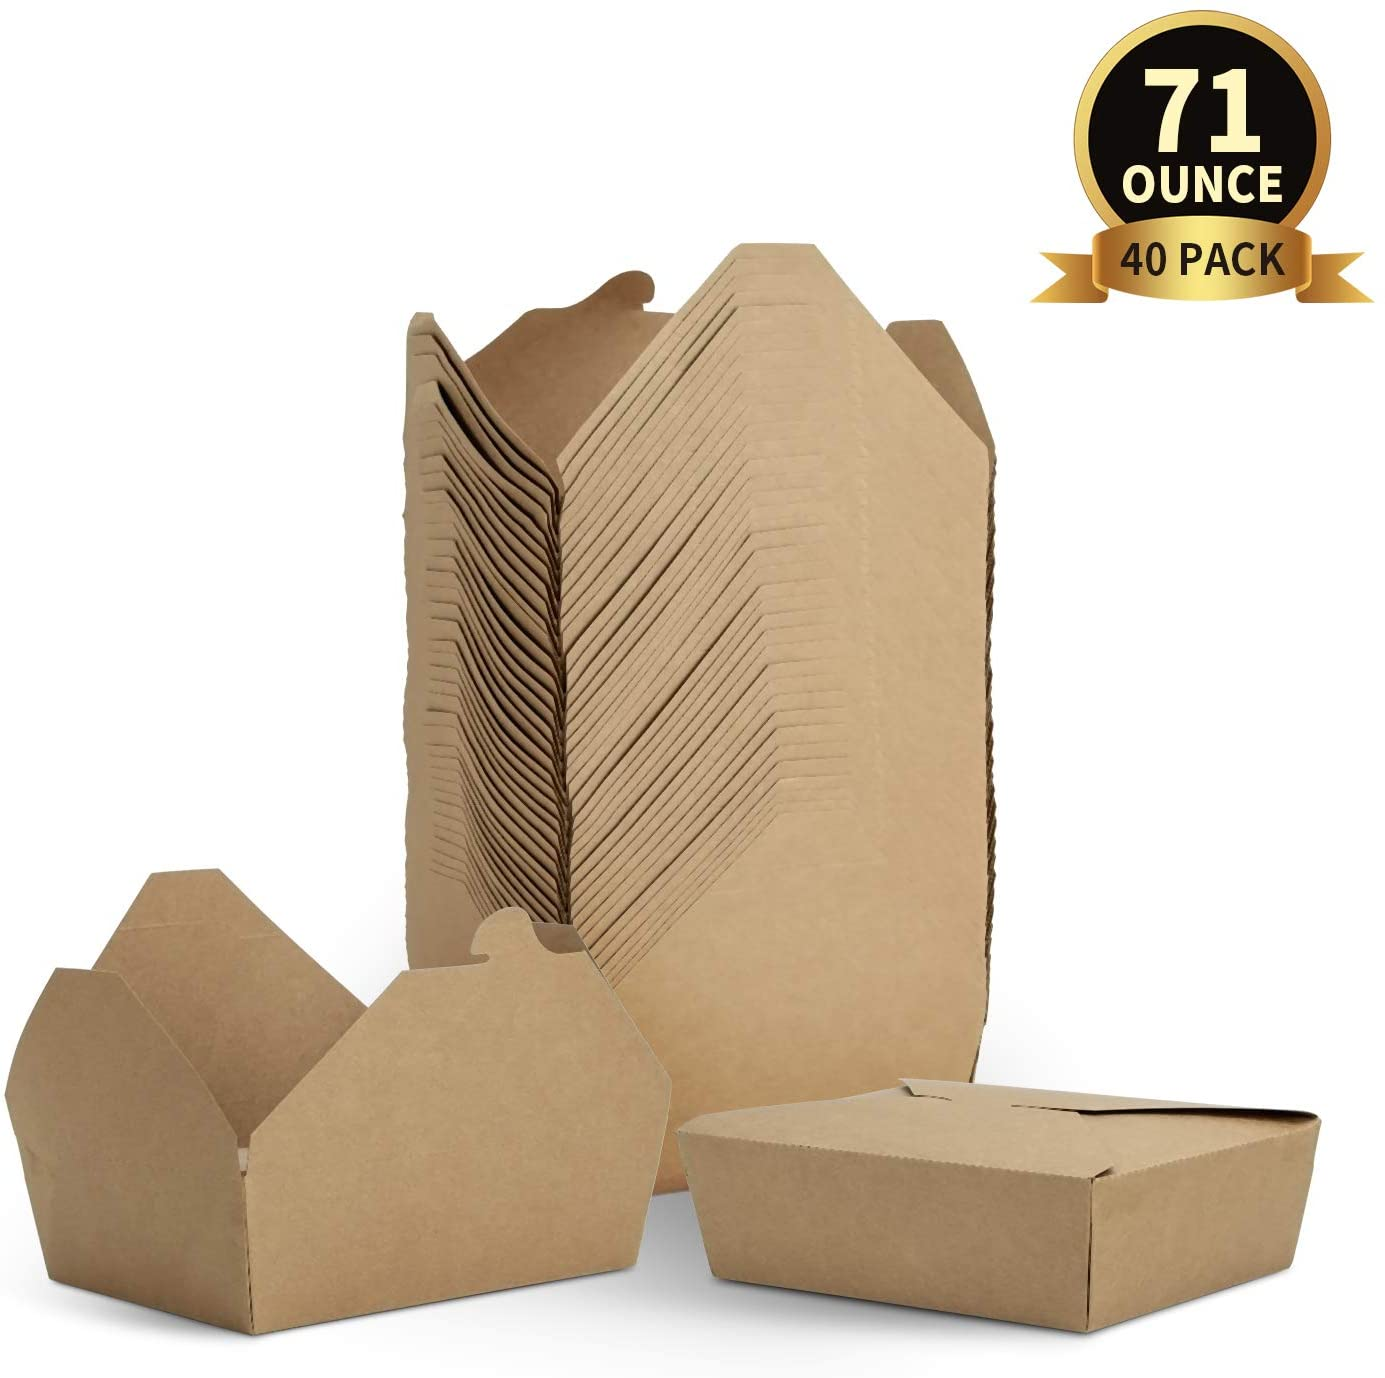 TOROTON Take Out Food Containers, Microwaveable Kraft Brown Take Out Boxes, Leak and Grease Resistant to Go Containers, for Restaurant, Catering and Party - 40 Pack 71 oz